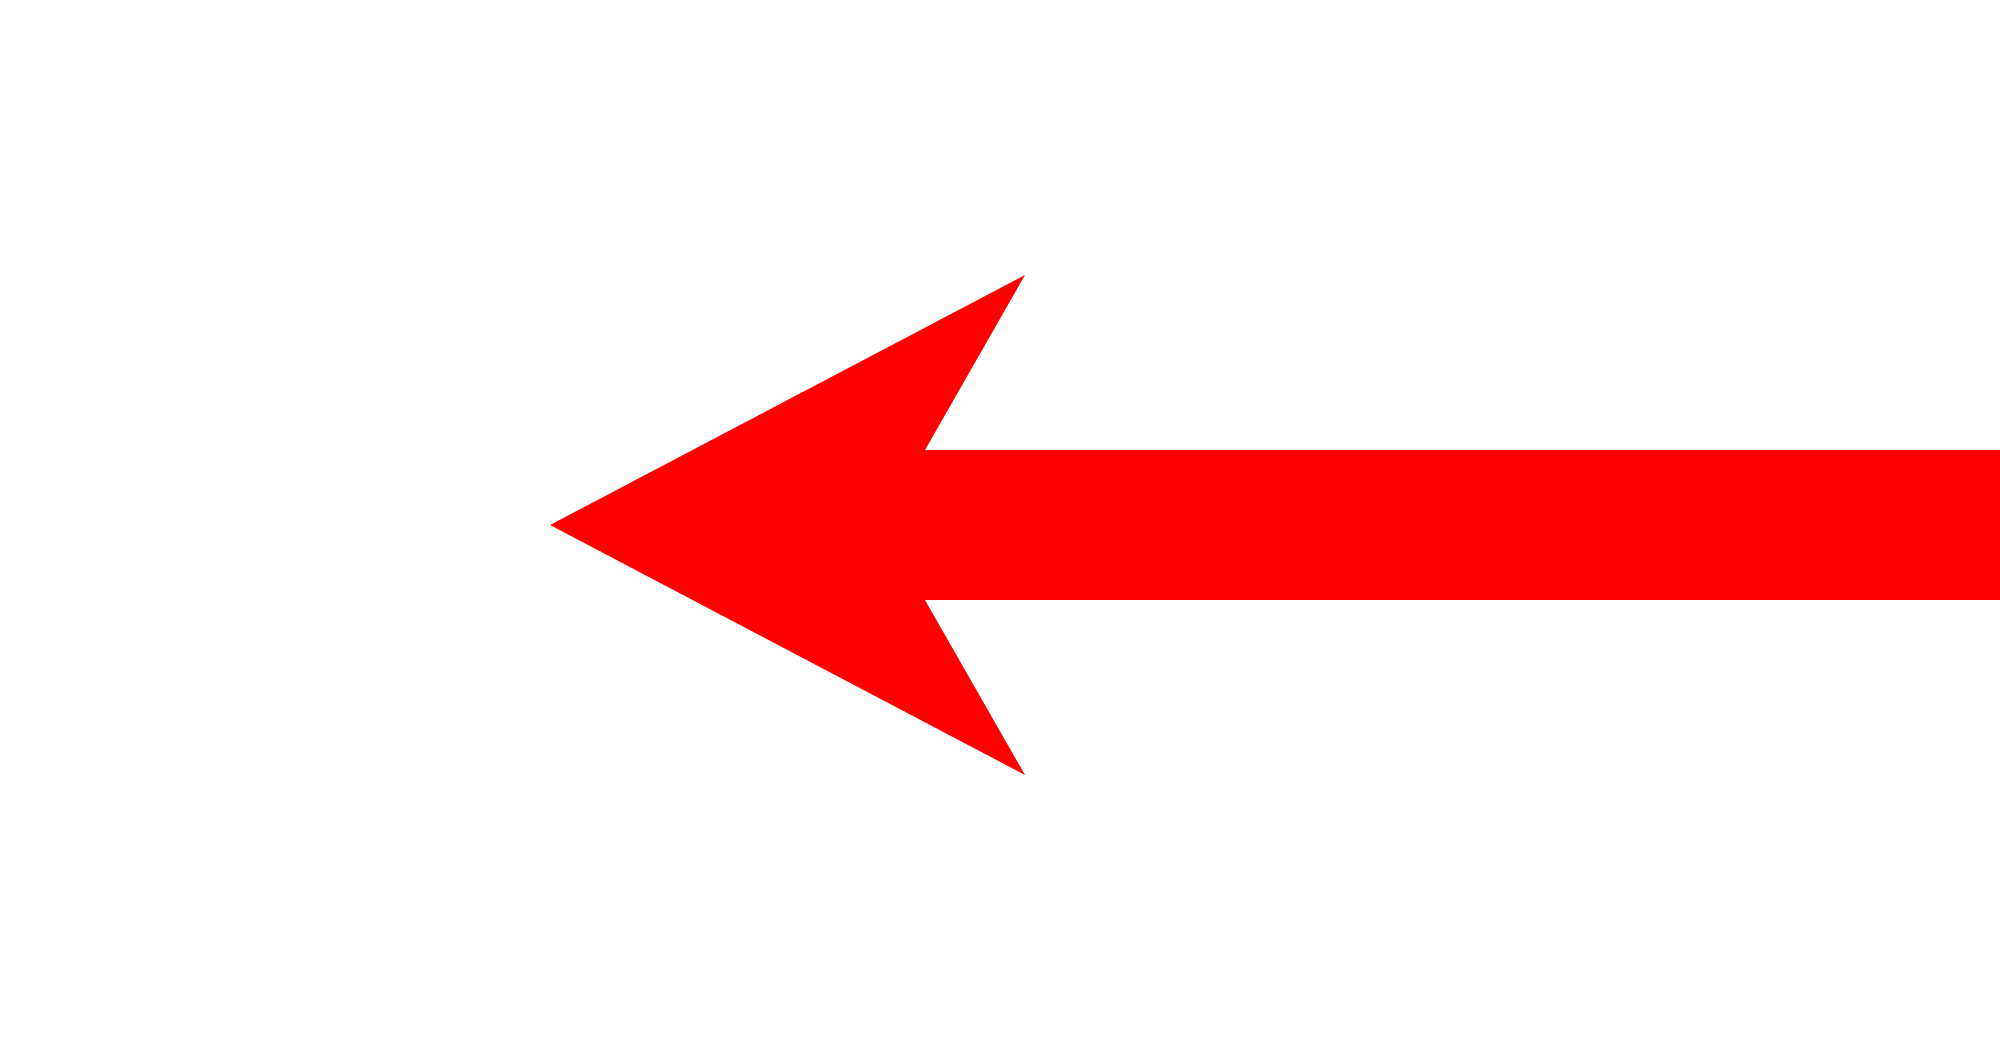 File short left arrow. Arrows images png